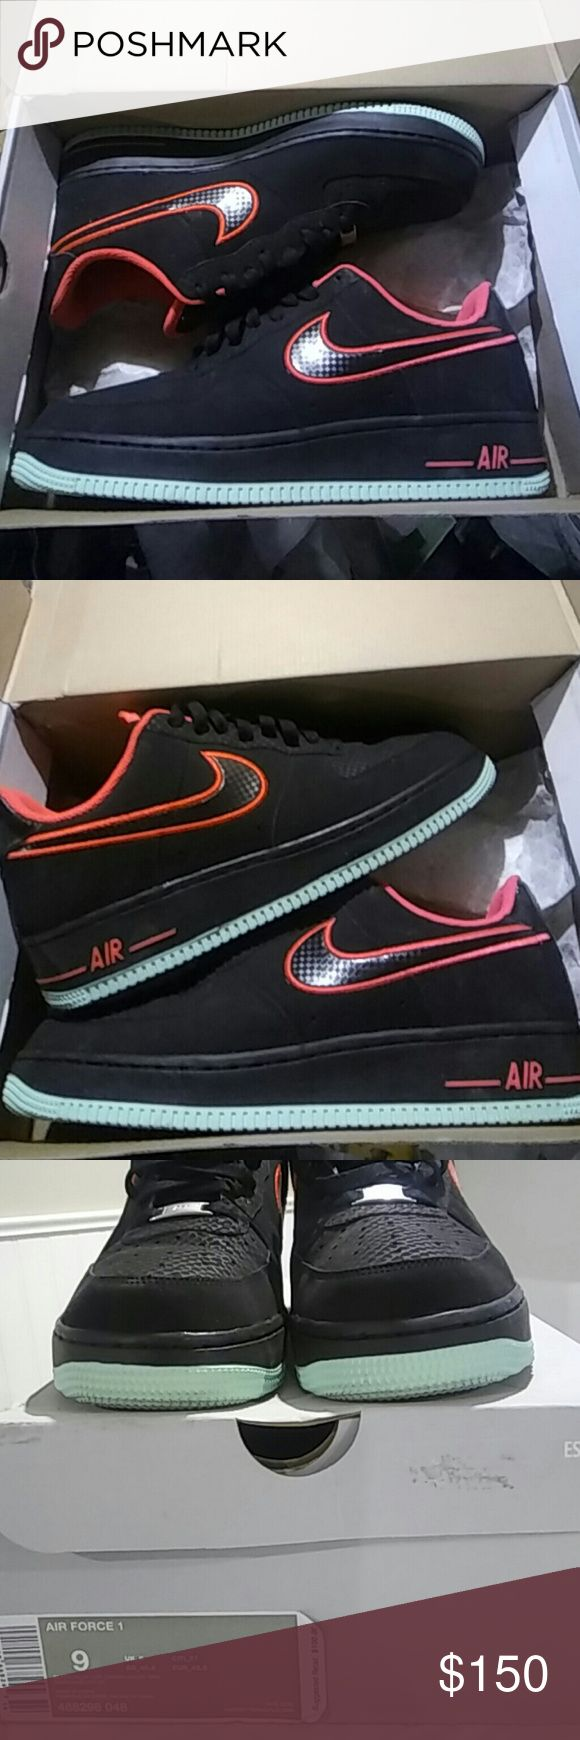 Yeezy air force 1s The air force 1s that complimented the yeezy foamposites Nike Shoes Sneakers